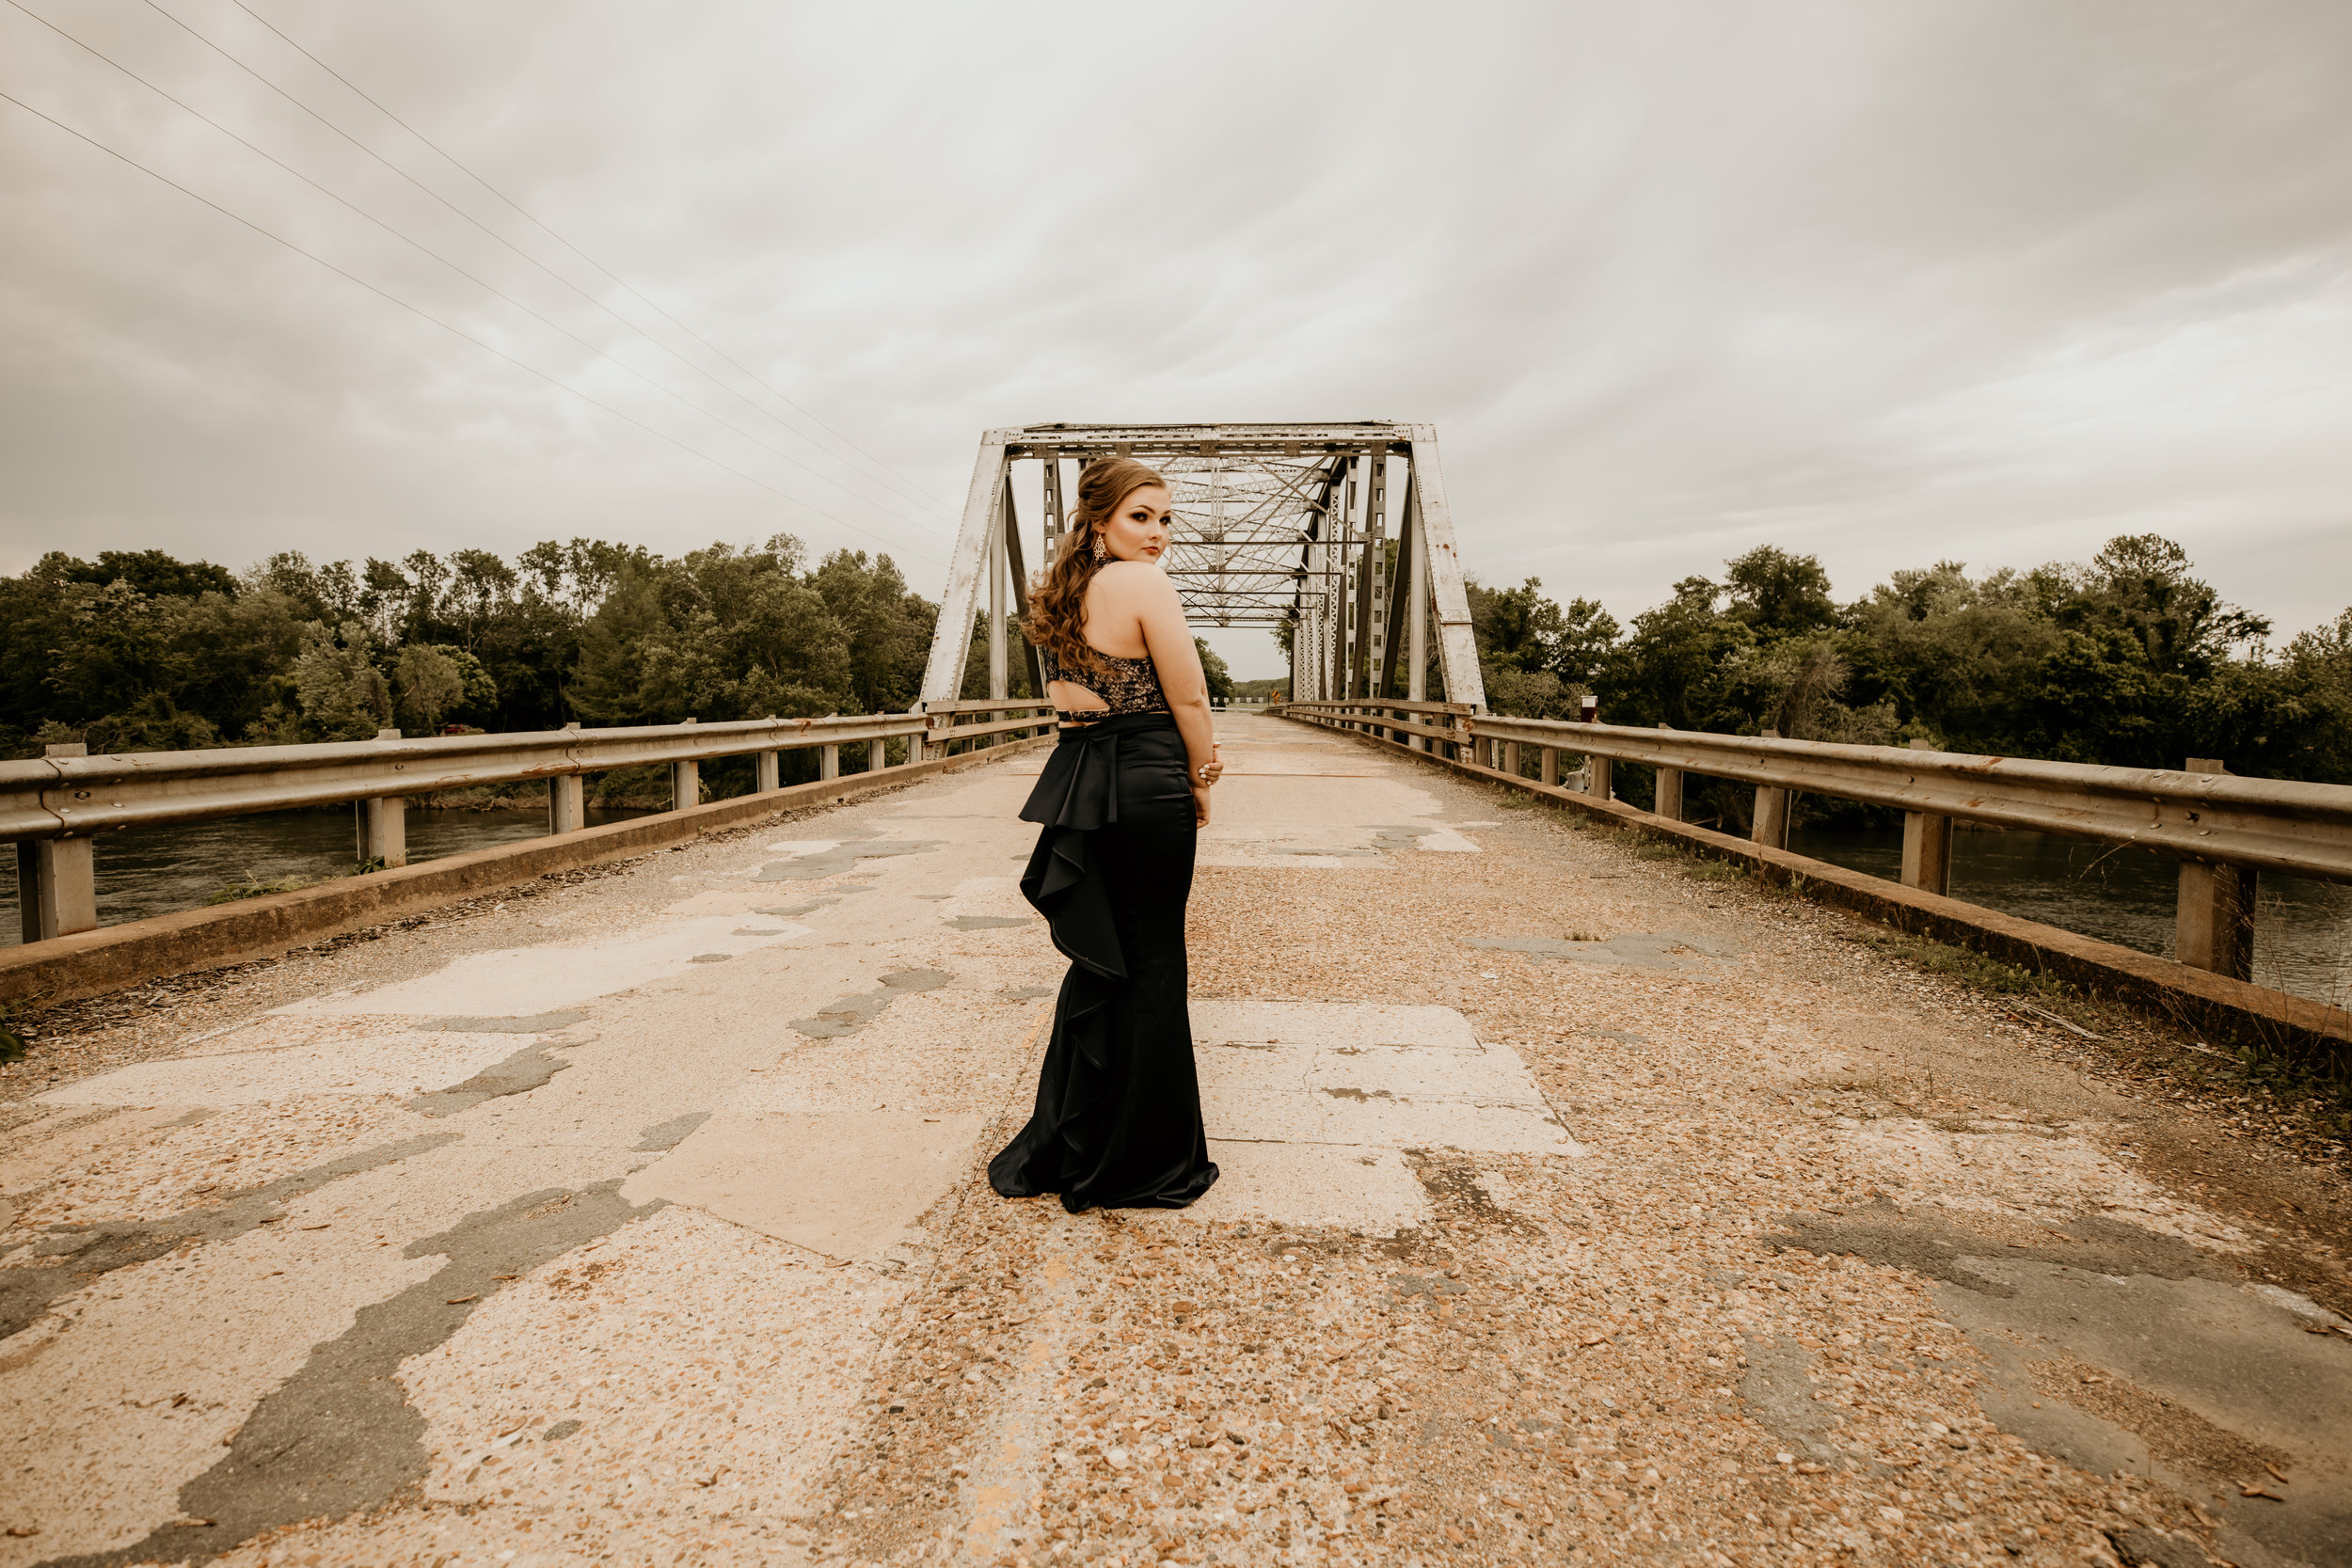 prom-senior-outdoor-photoshoot-7760.jpg